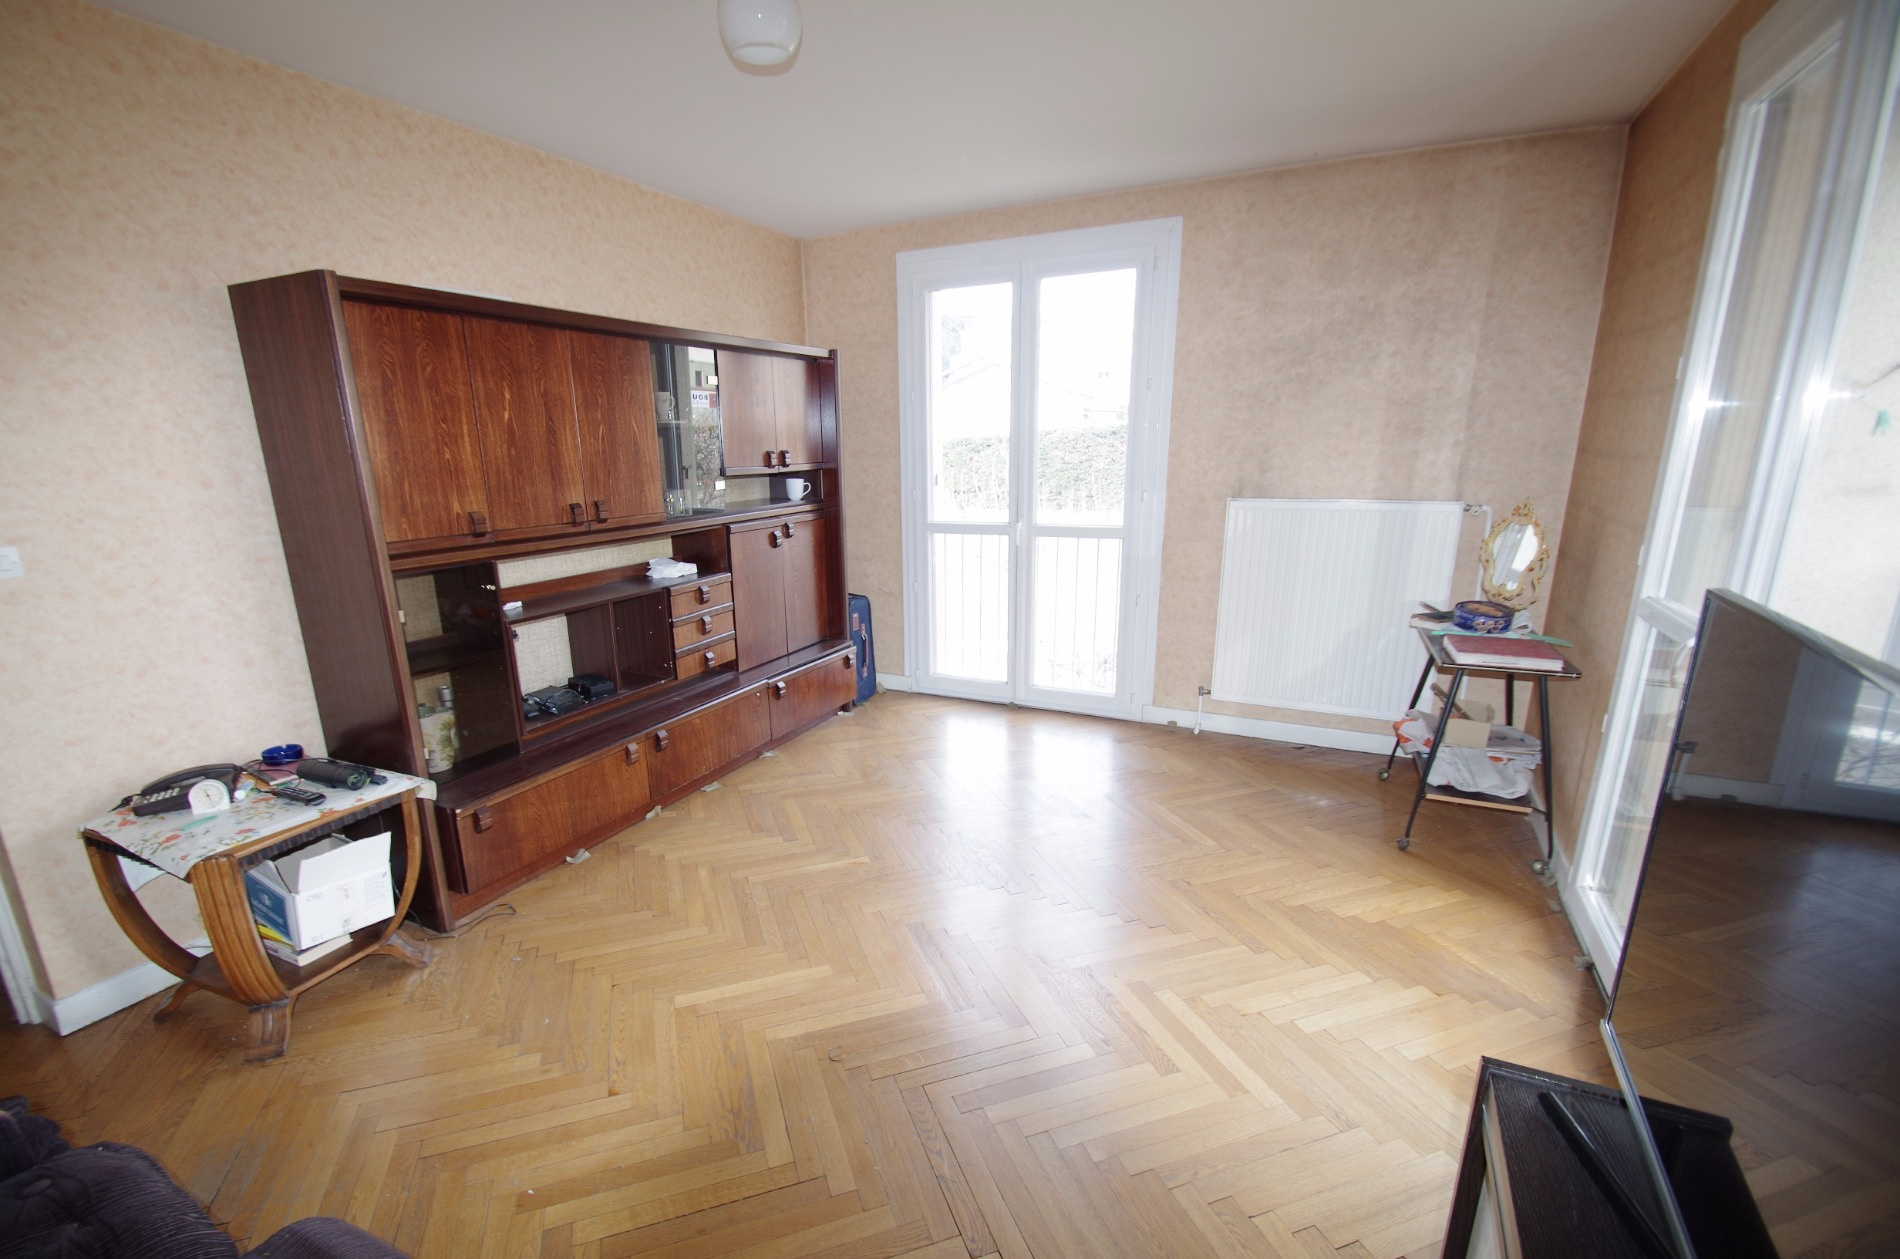 Vente appartement t4 lumineux a la mulatiere for Garage ad oullins